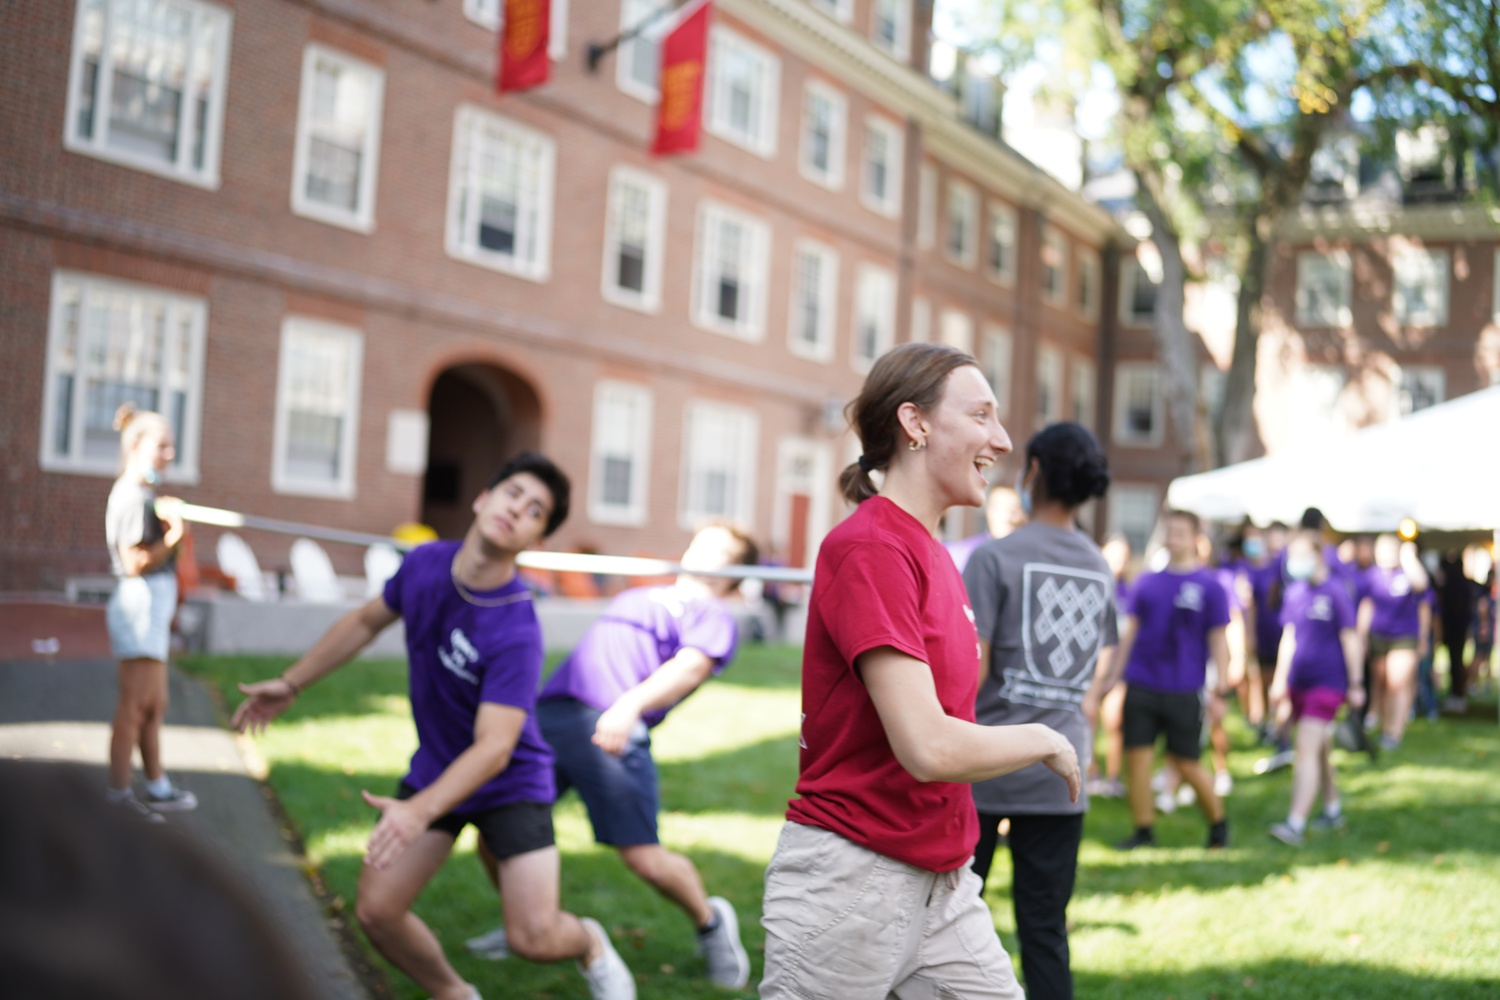 Students of Quincy House participate in the House's field day activities in the Quincy courtyard this past Saturday.